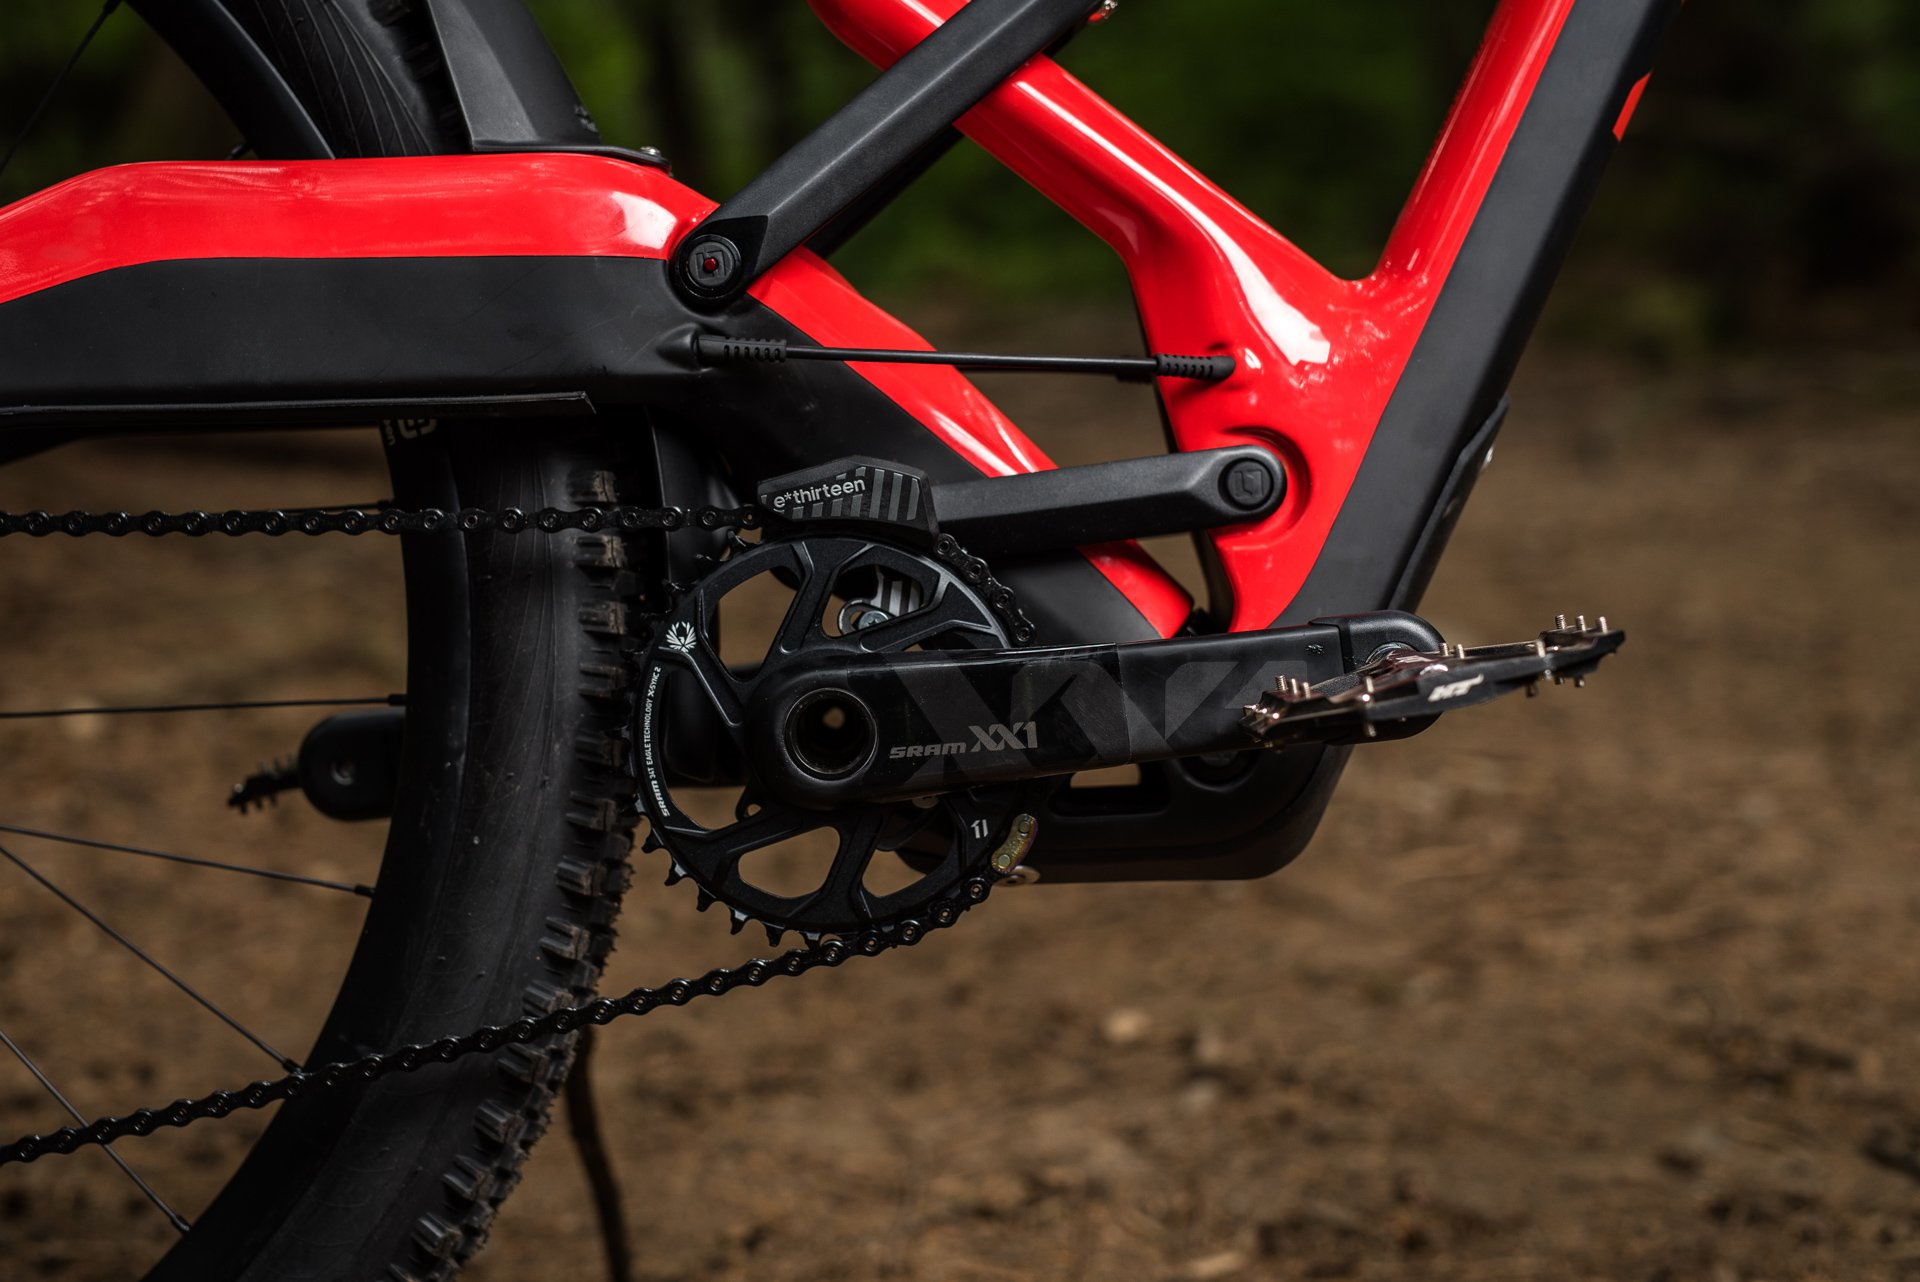 Marin and Polygon's Naild R3ACT Suspension System